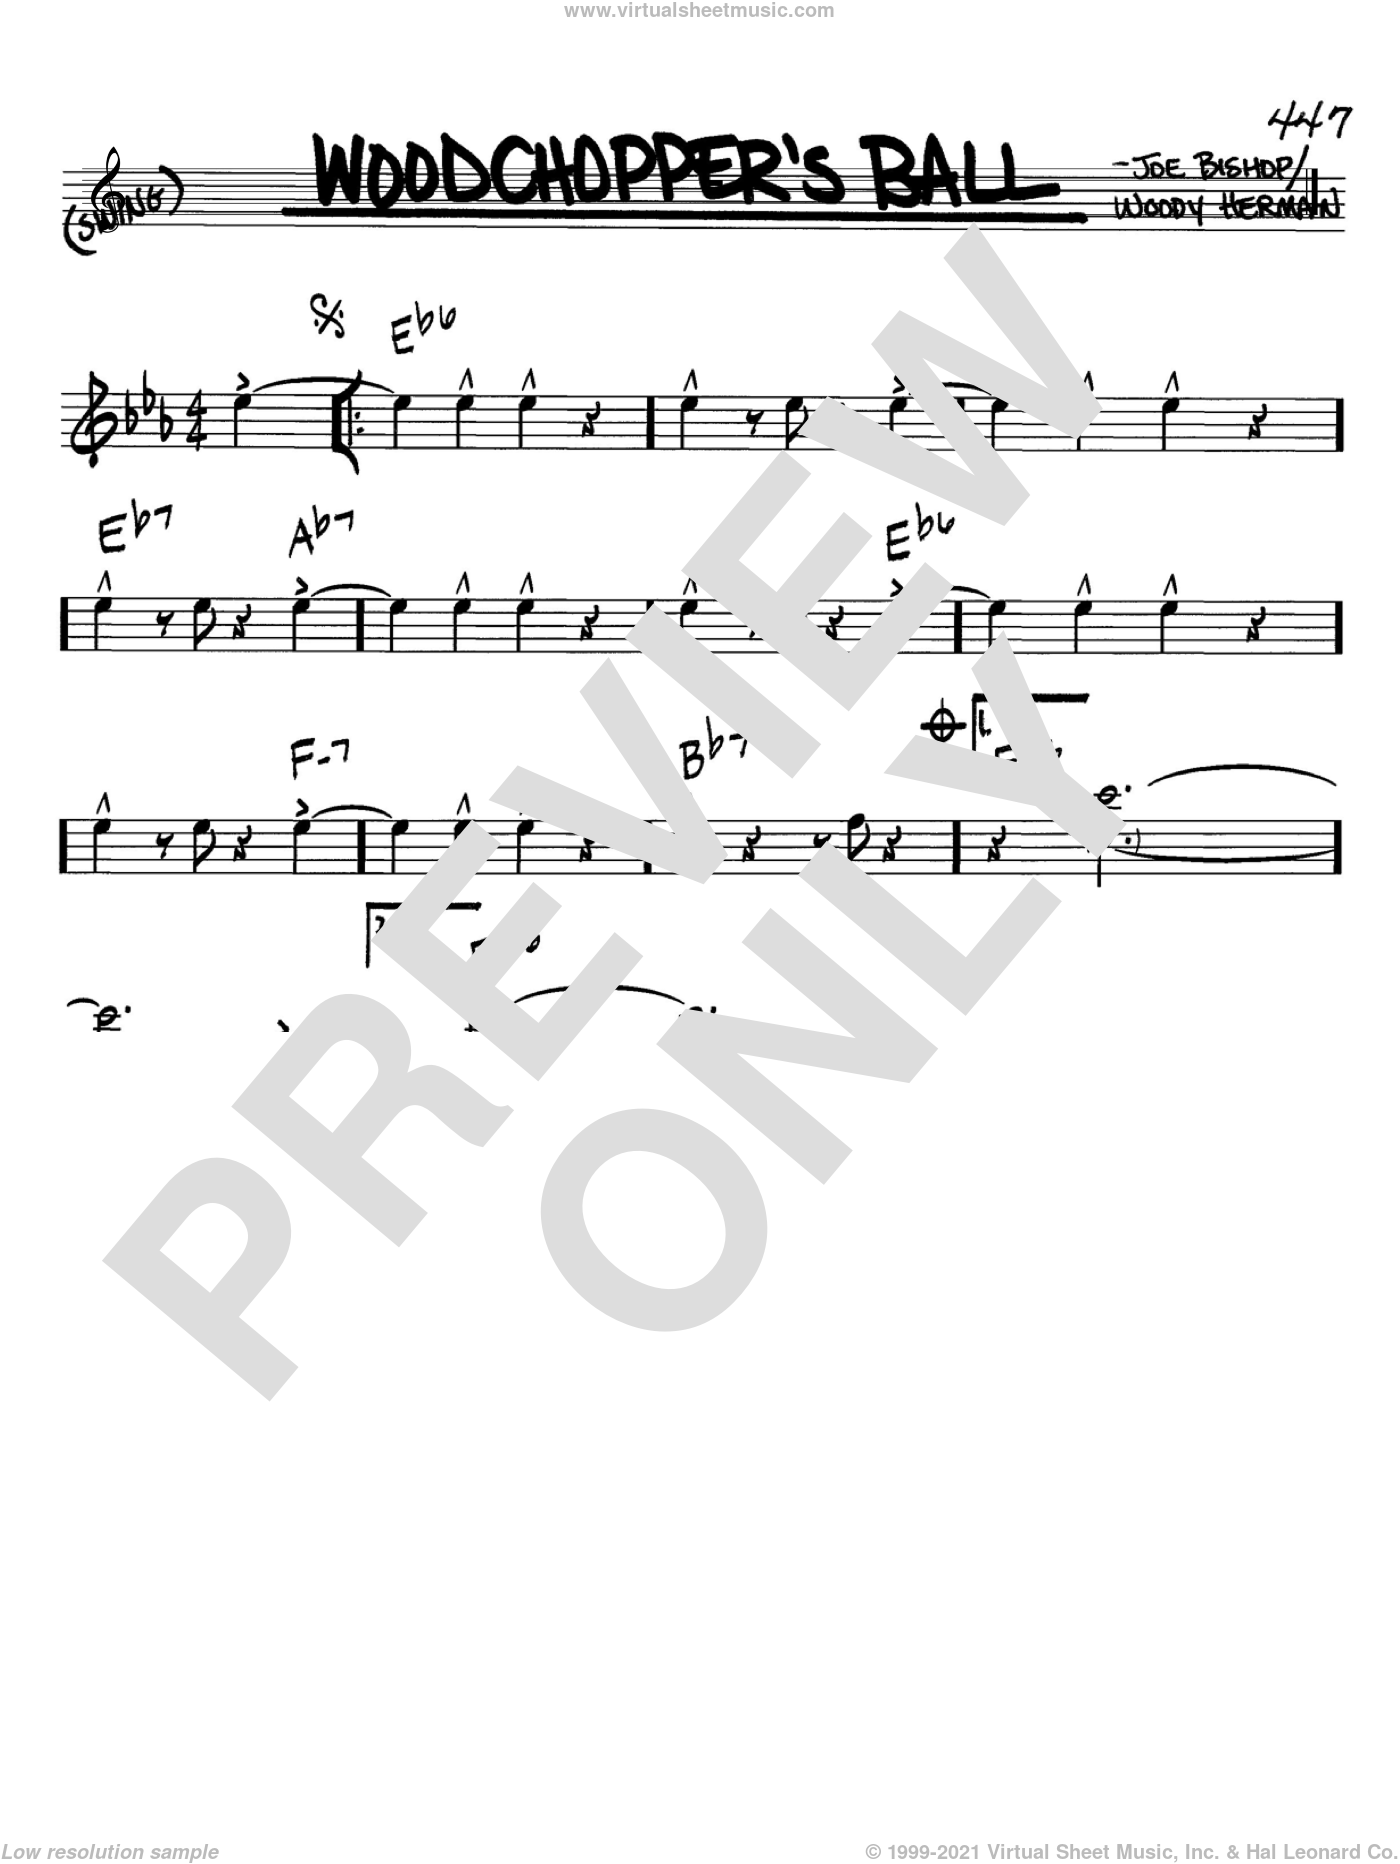 Woodchopper's Ball sheet music for voice and other instruments (Bb) by Woody Herman, intermediate voice. Score Image Preview.